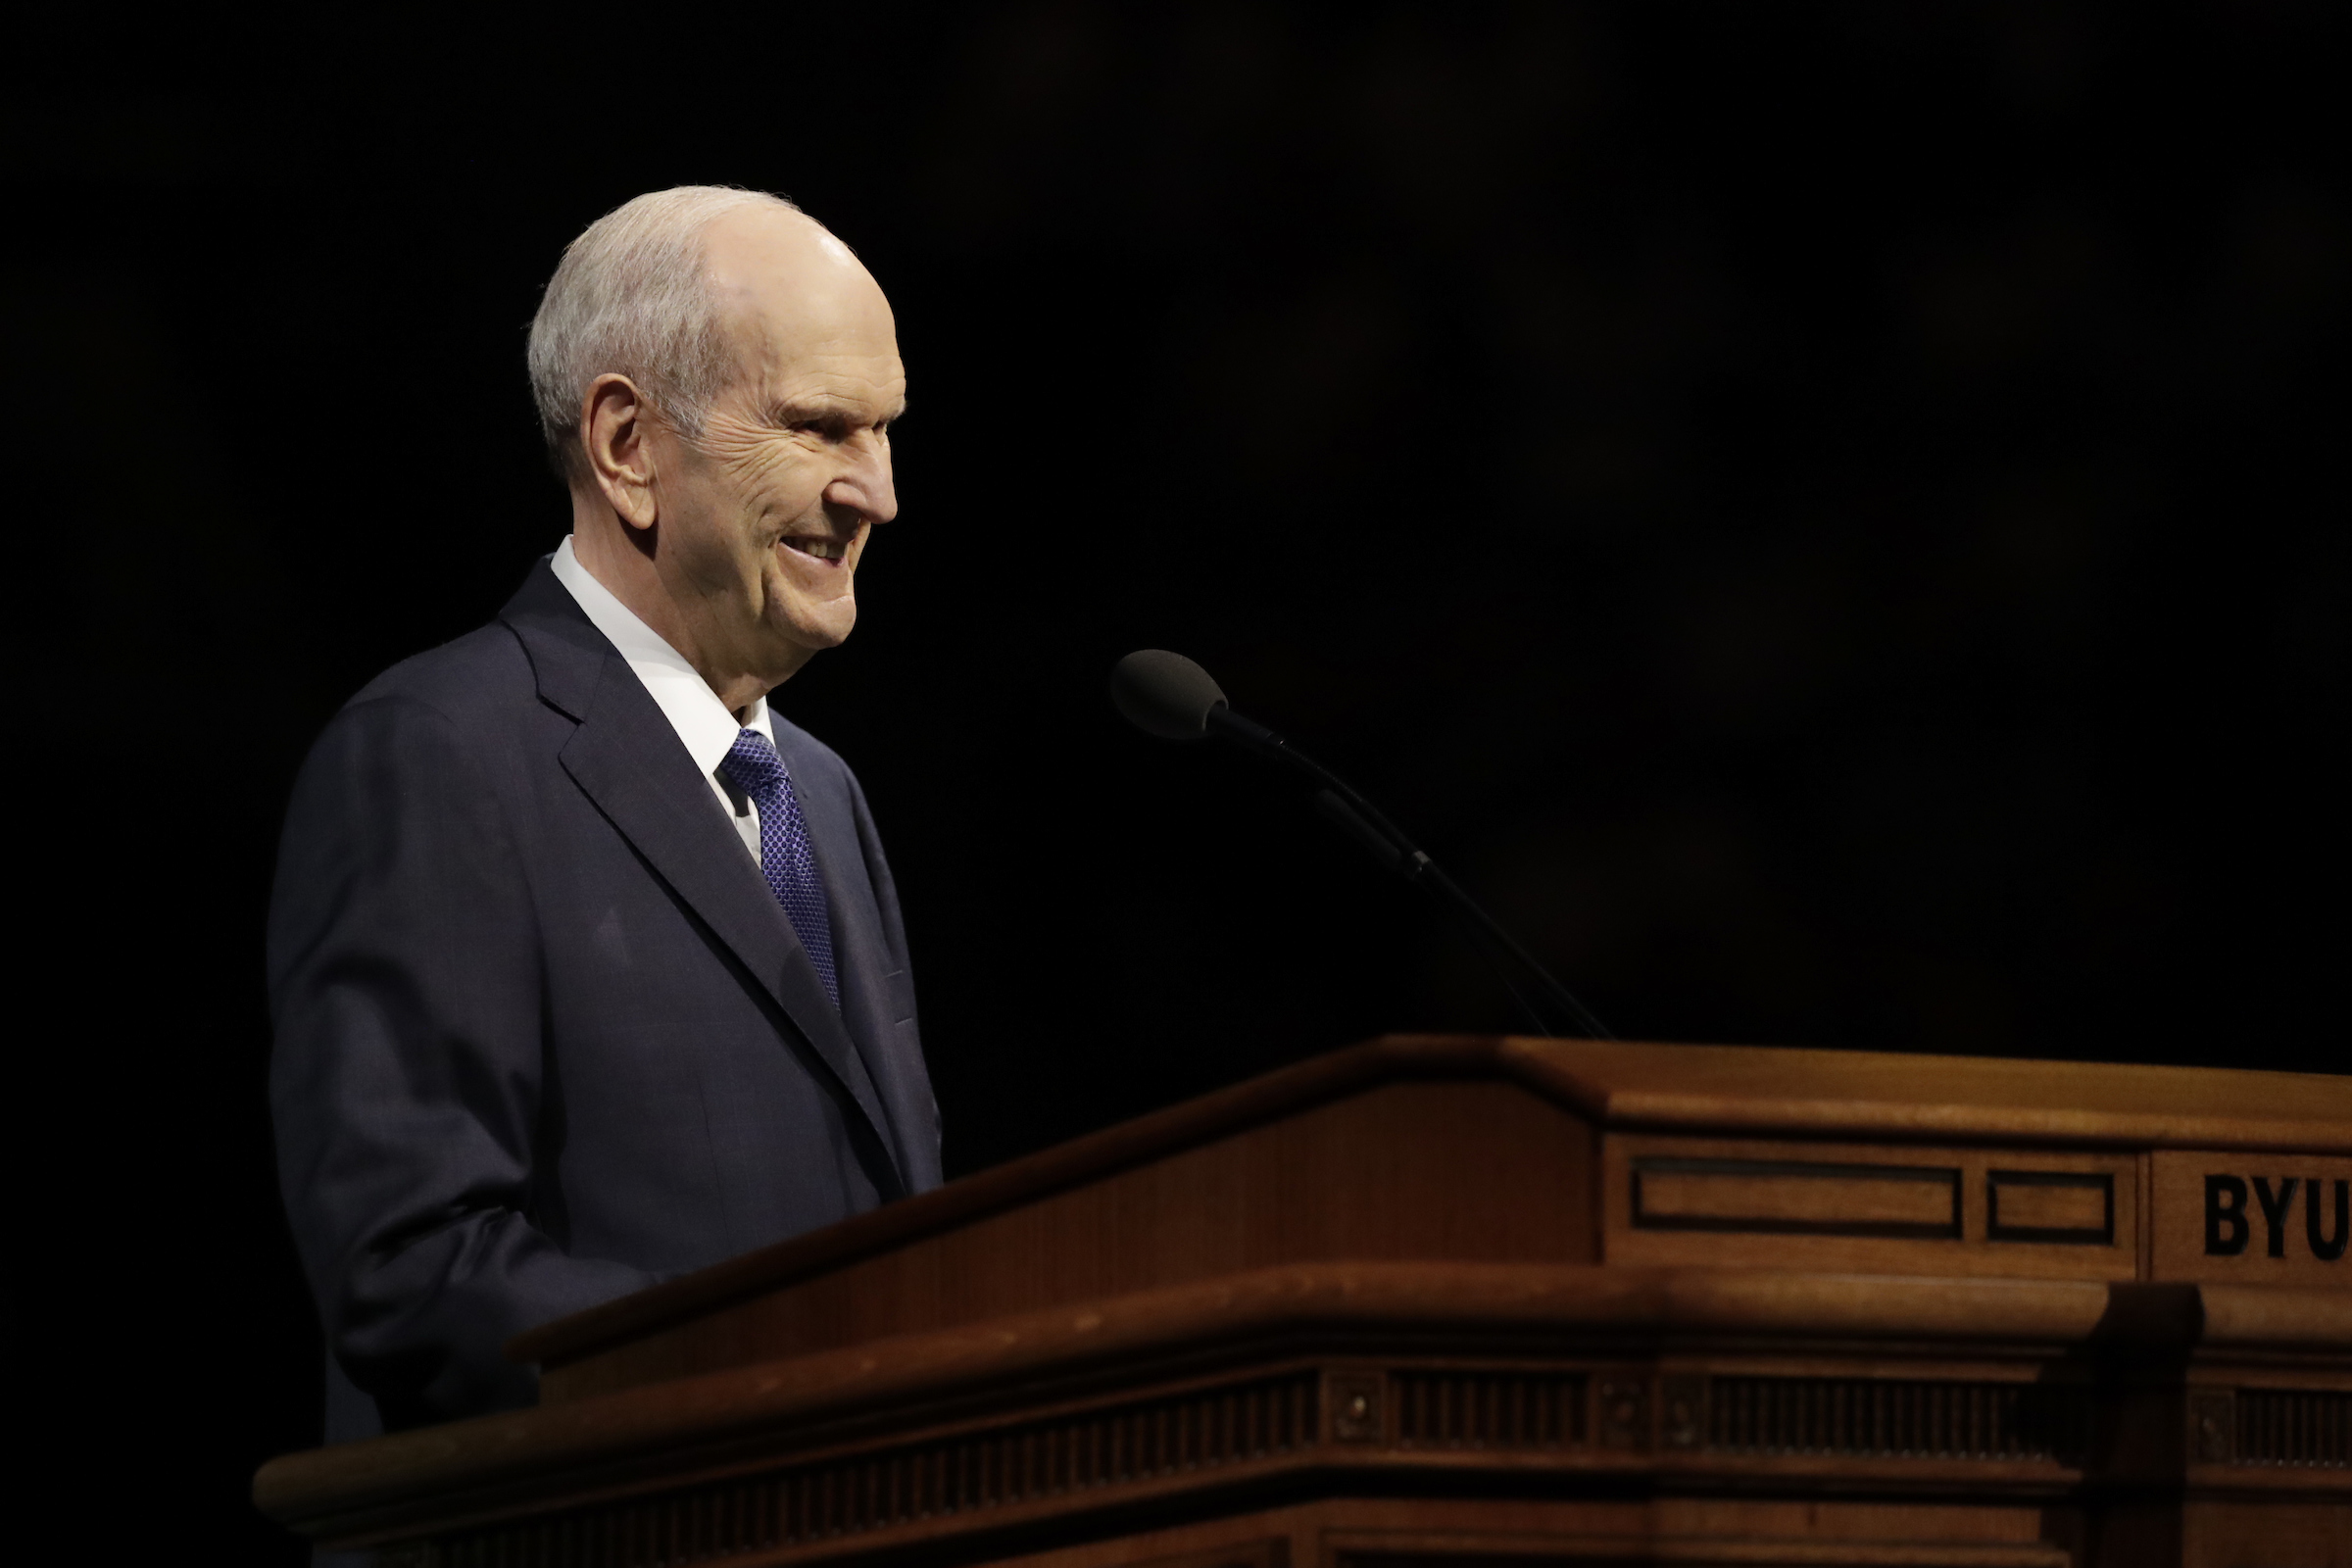 President Russell M. Nelson speaks during a BYU campus devotional in the Marriott Center in Provo, Utah, on Tuesday, Sept. 17, 2019.